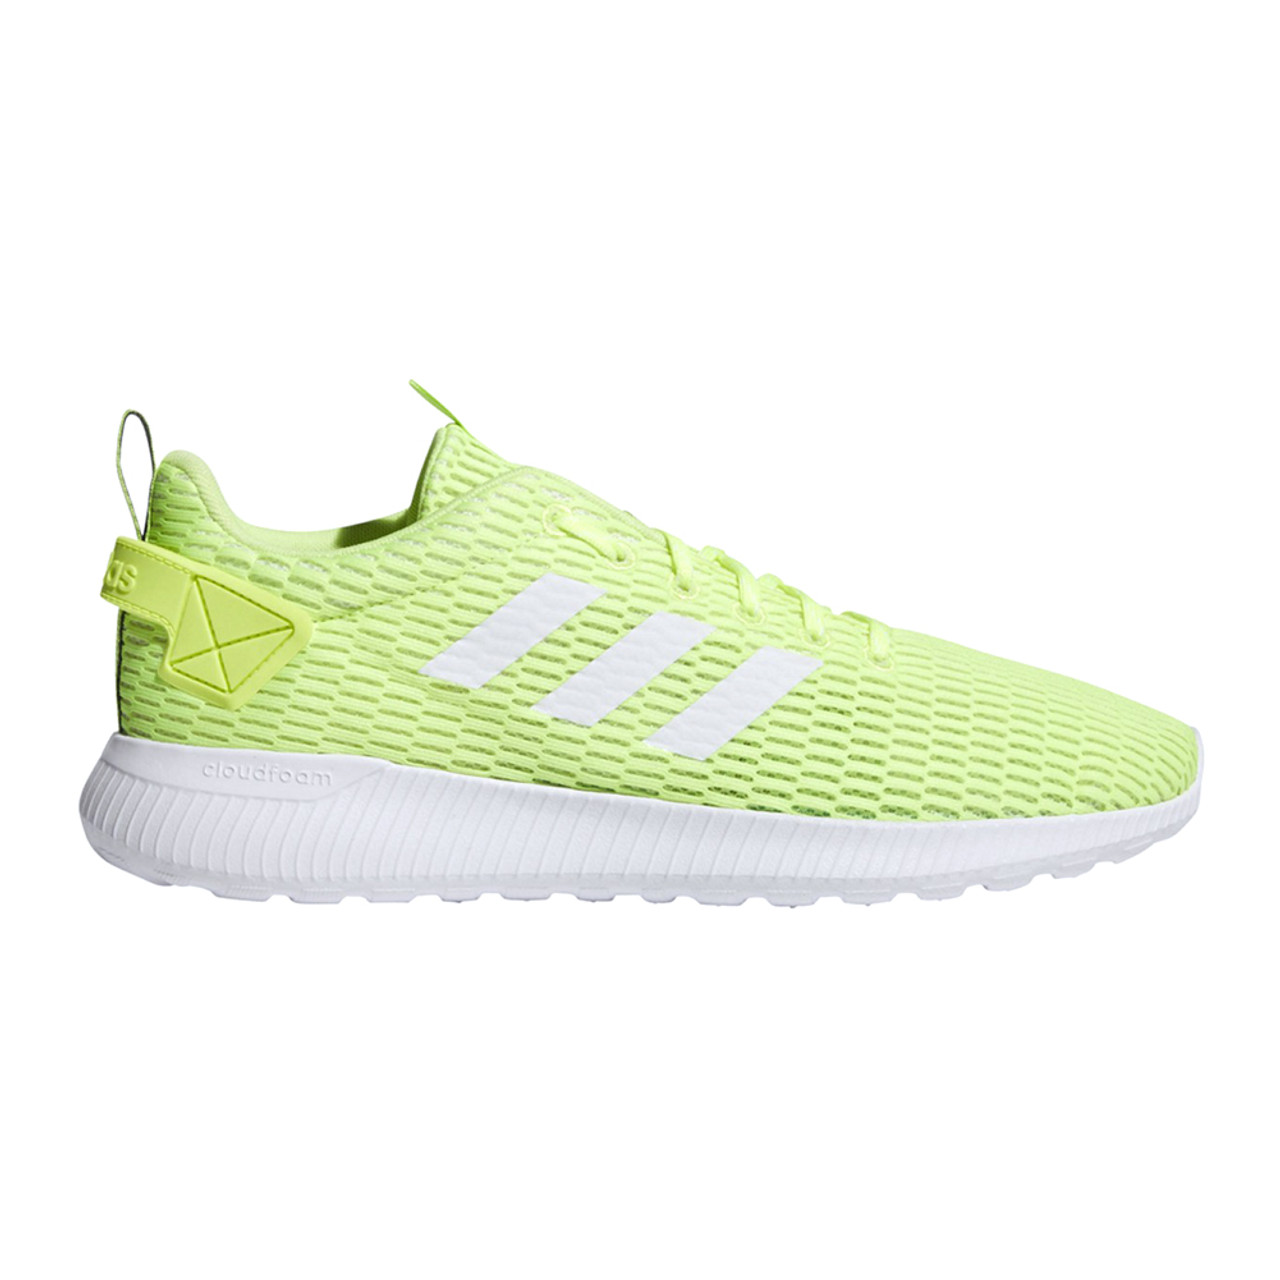 hot sale online 4f6ec 3e5be Adidas Men s Lite Racer Climacool Cross Trainer Hi-Res Yellow White - Shop  now